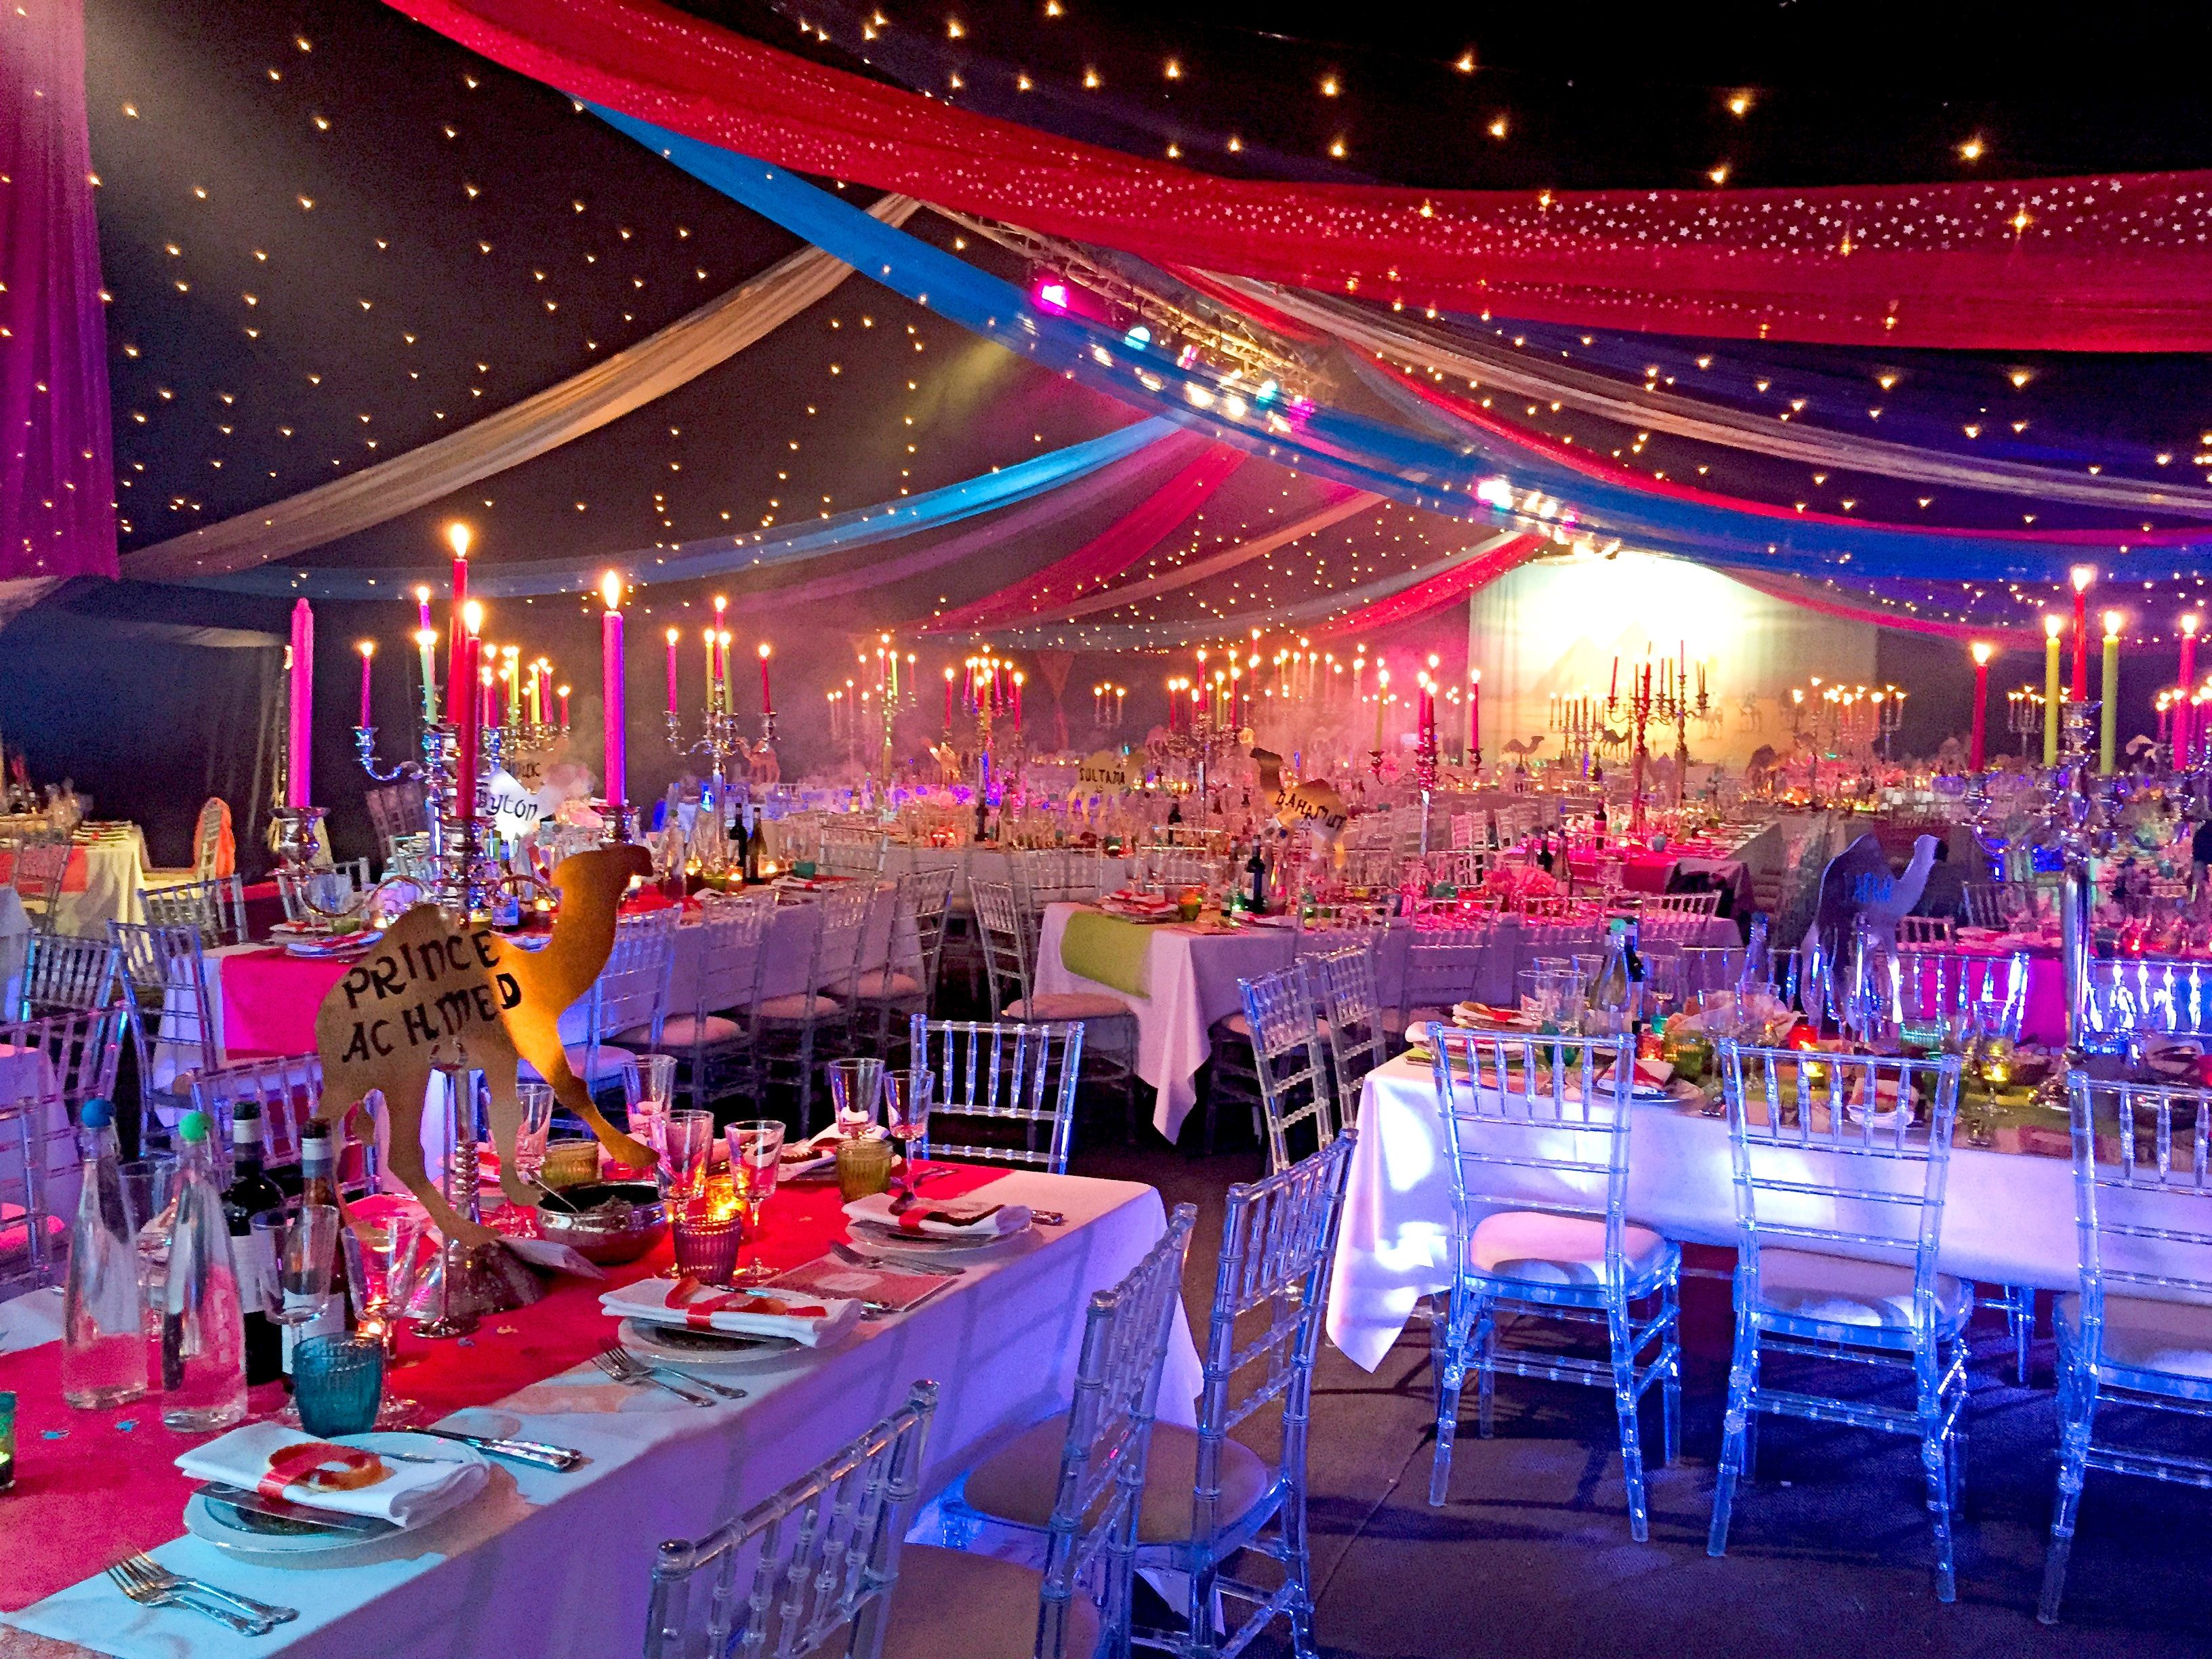 Bespoke party planners arabian nights theme charity ball for Summer white party ideas